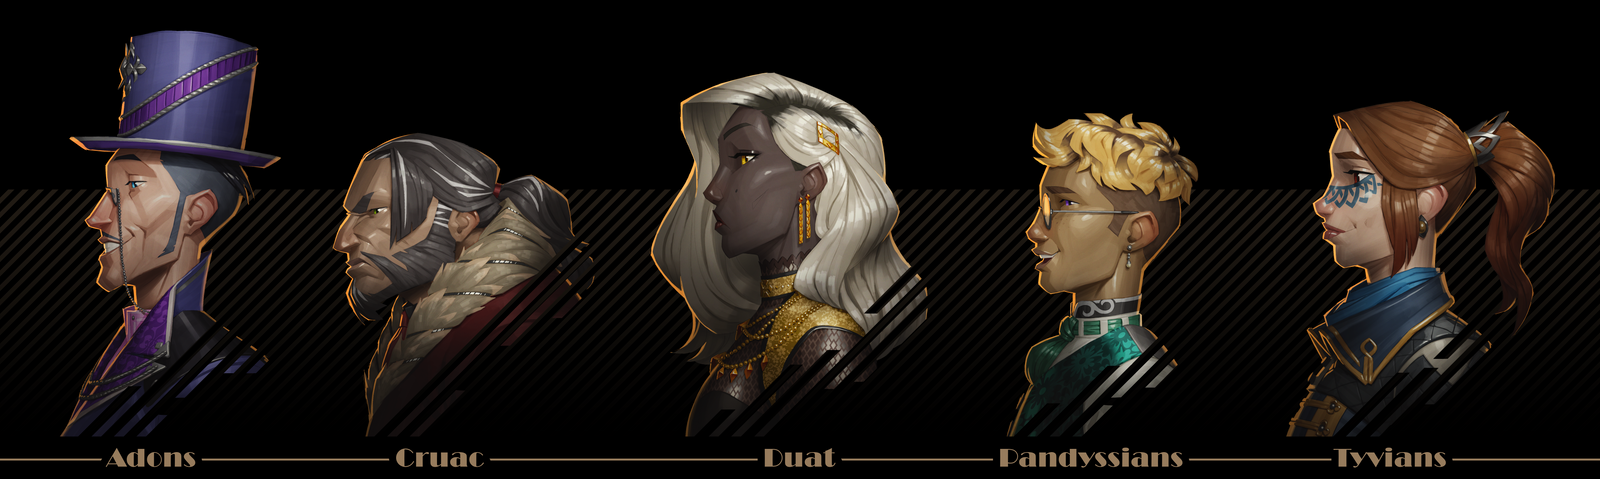 Dystopia Races (commission)